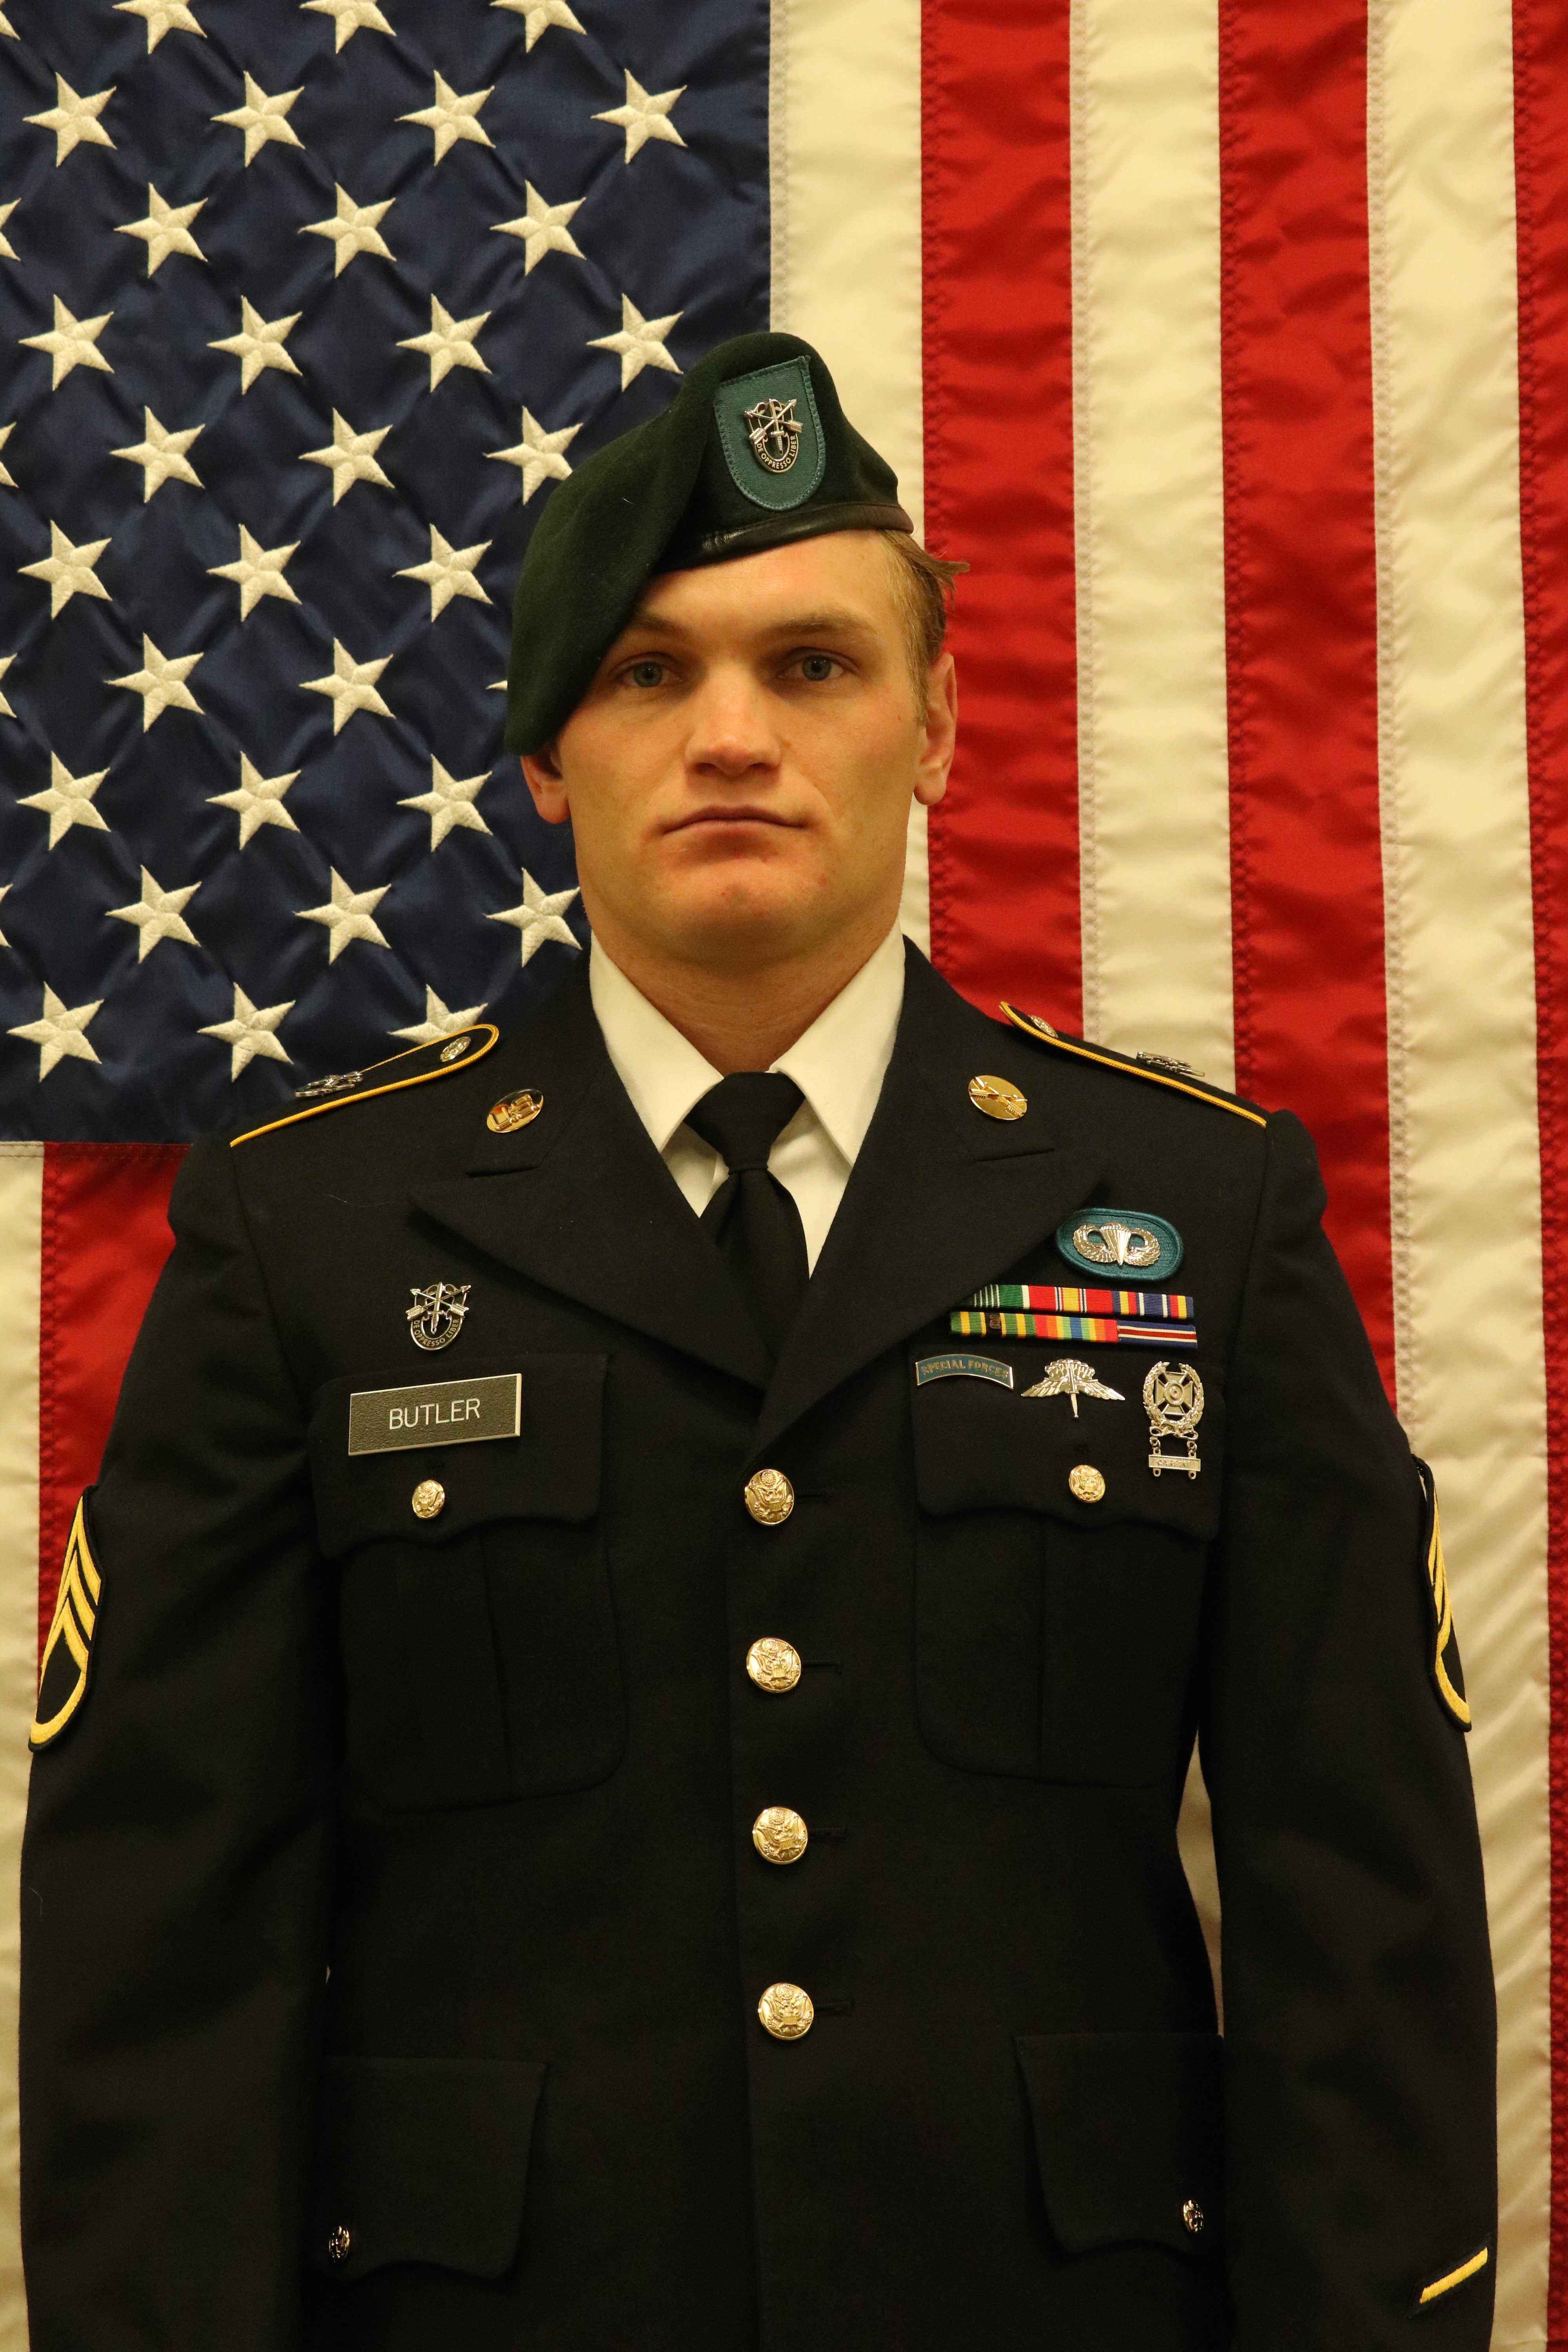 Staff Sgt. Aaron Butler, a Green Beret with 19th Special Forces Group, died Aug. 16, 2017, while conducting combat operations in Afghanistan. (Army)